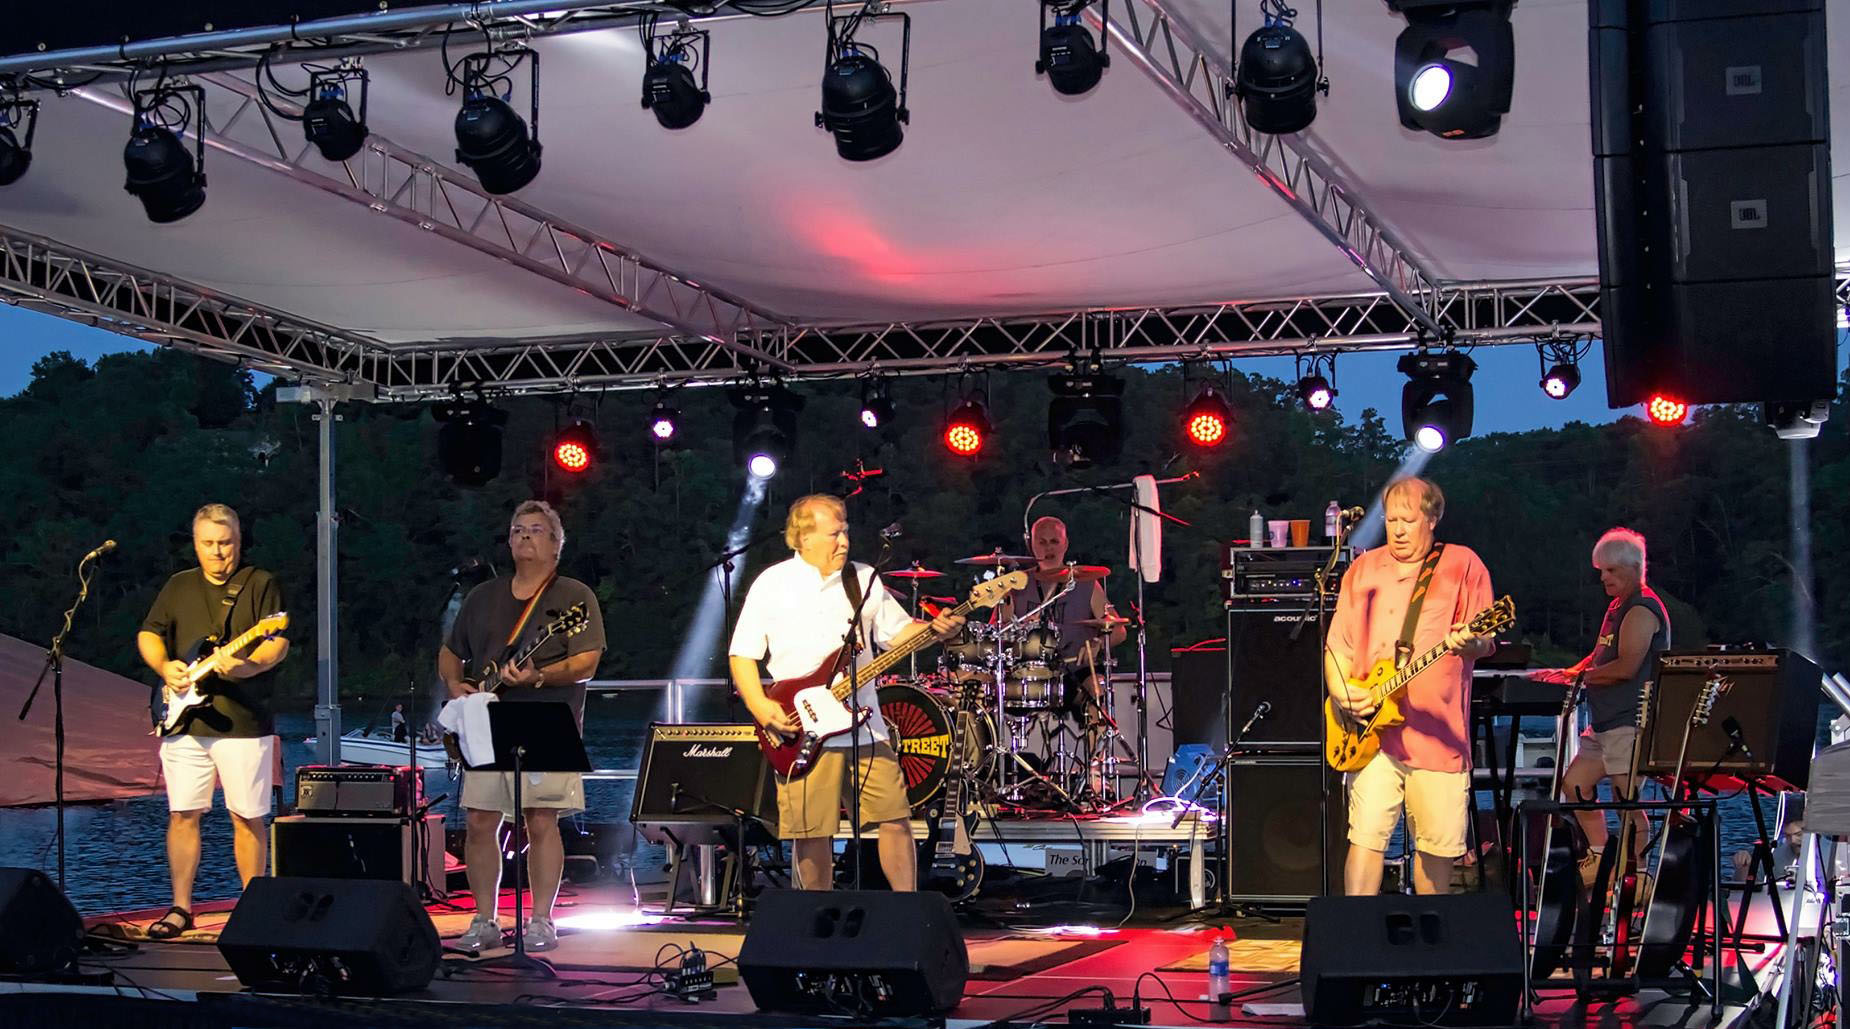 The band Riverstreet performing on stage.